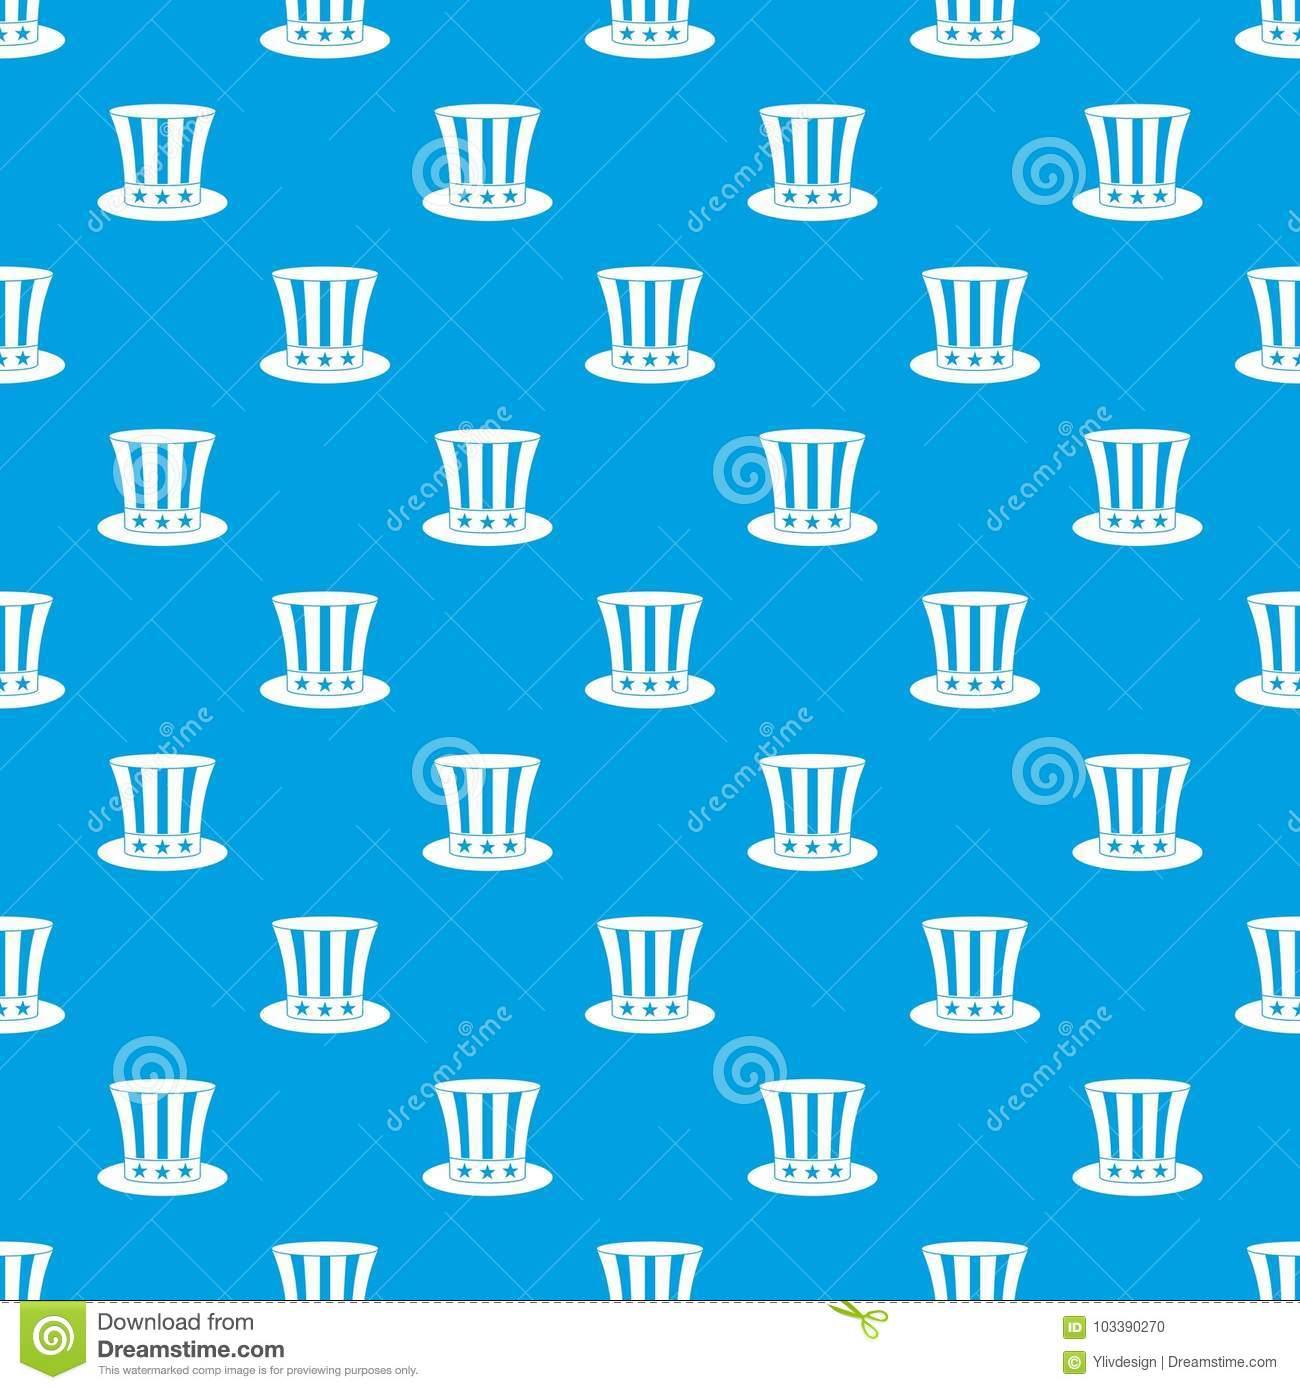 uncle sam hat pattern seamless blue stock vector illustration of